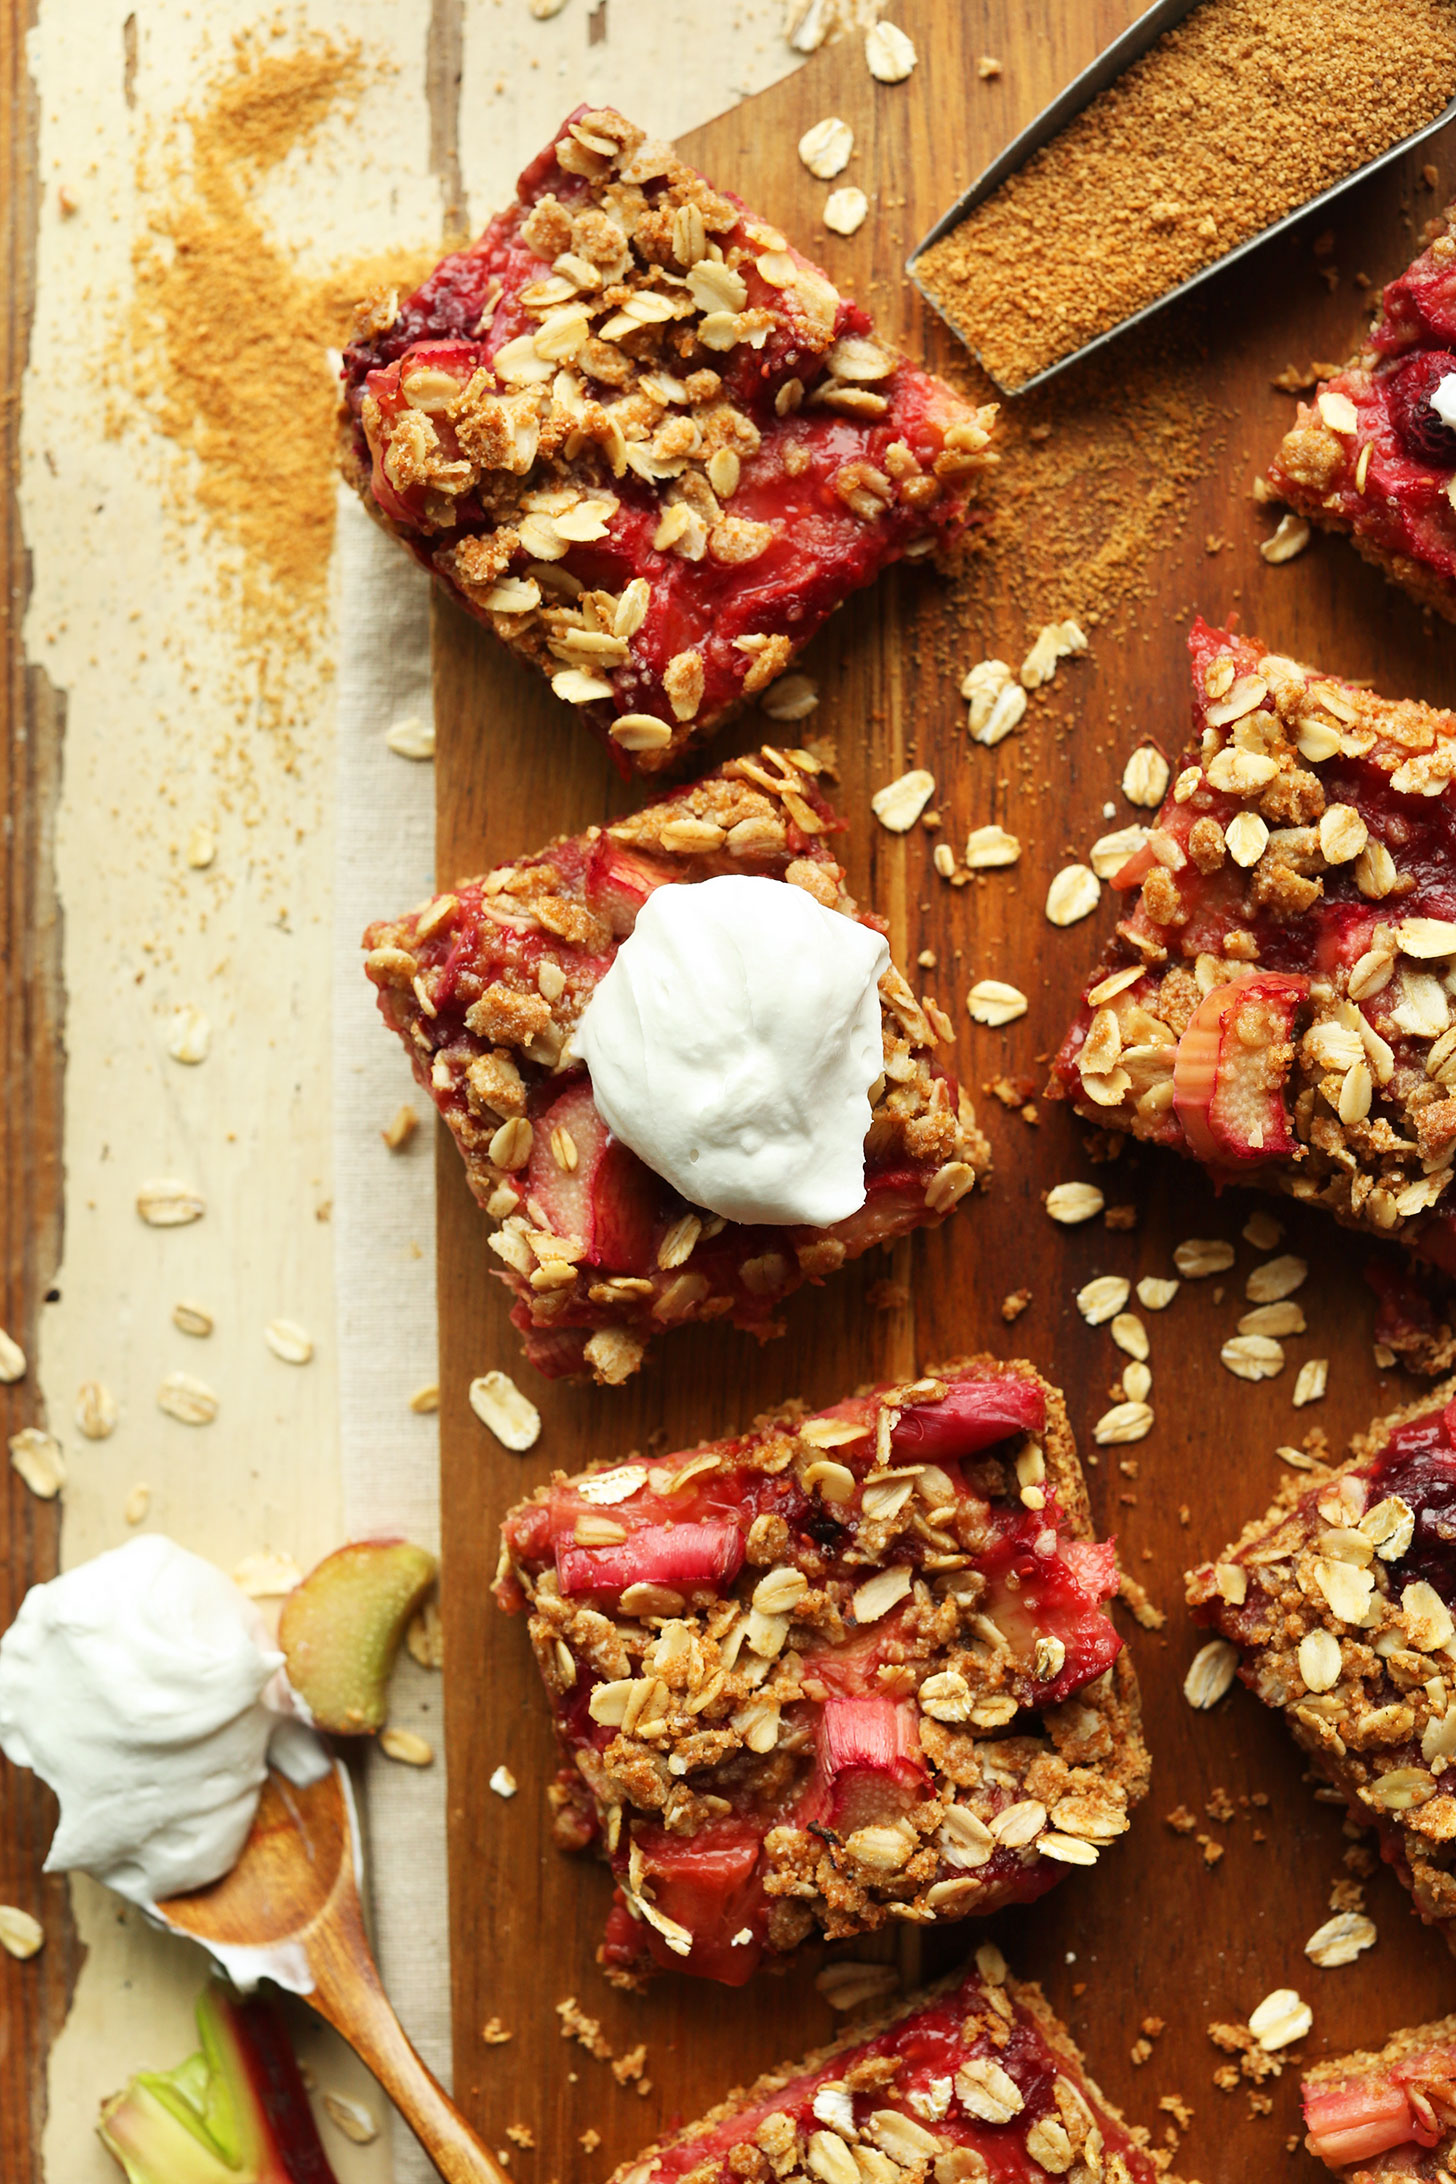 Squares of our delicious gluten-free vegan Strawberry Rhubarb Crumble Bars recipe